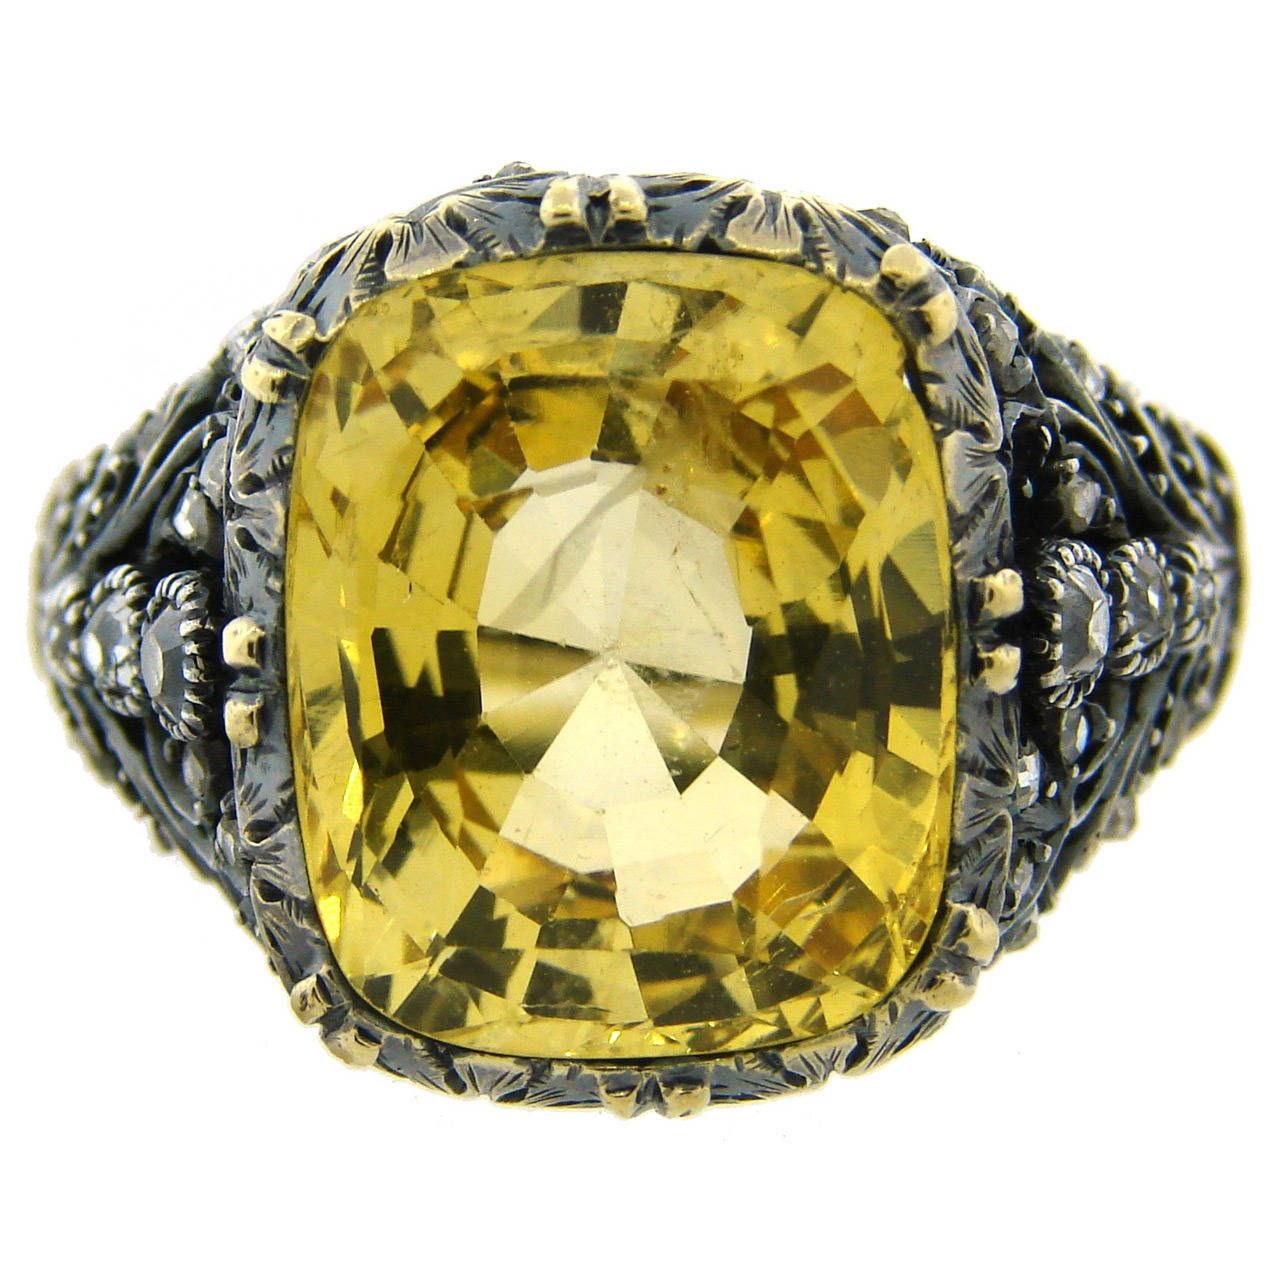 1950s Mario Buccellati Yellow Sapphire Diamond Gold Ring From A Unique Collection Of Vintage Cocktail R Buccellati Jewelry Gold Diamond Rings Yellow Sapphire